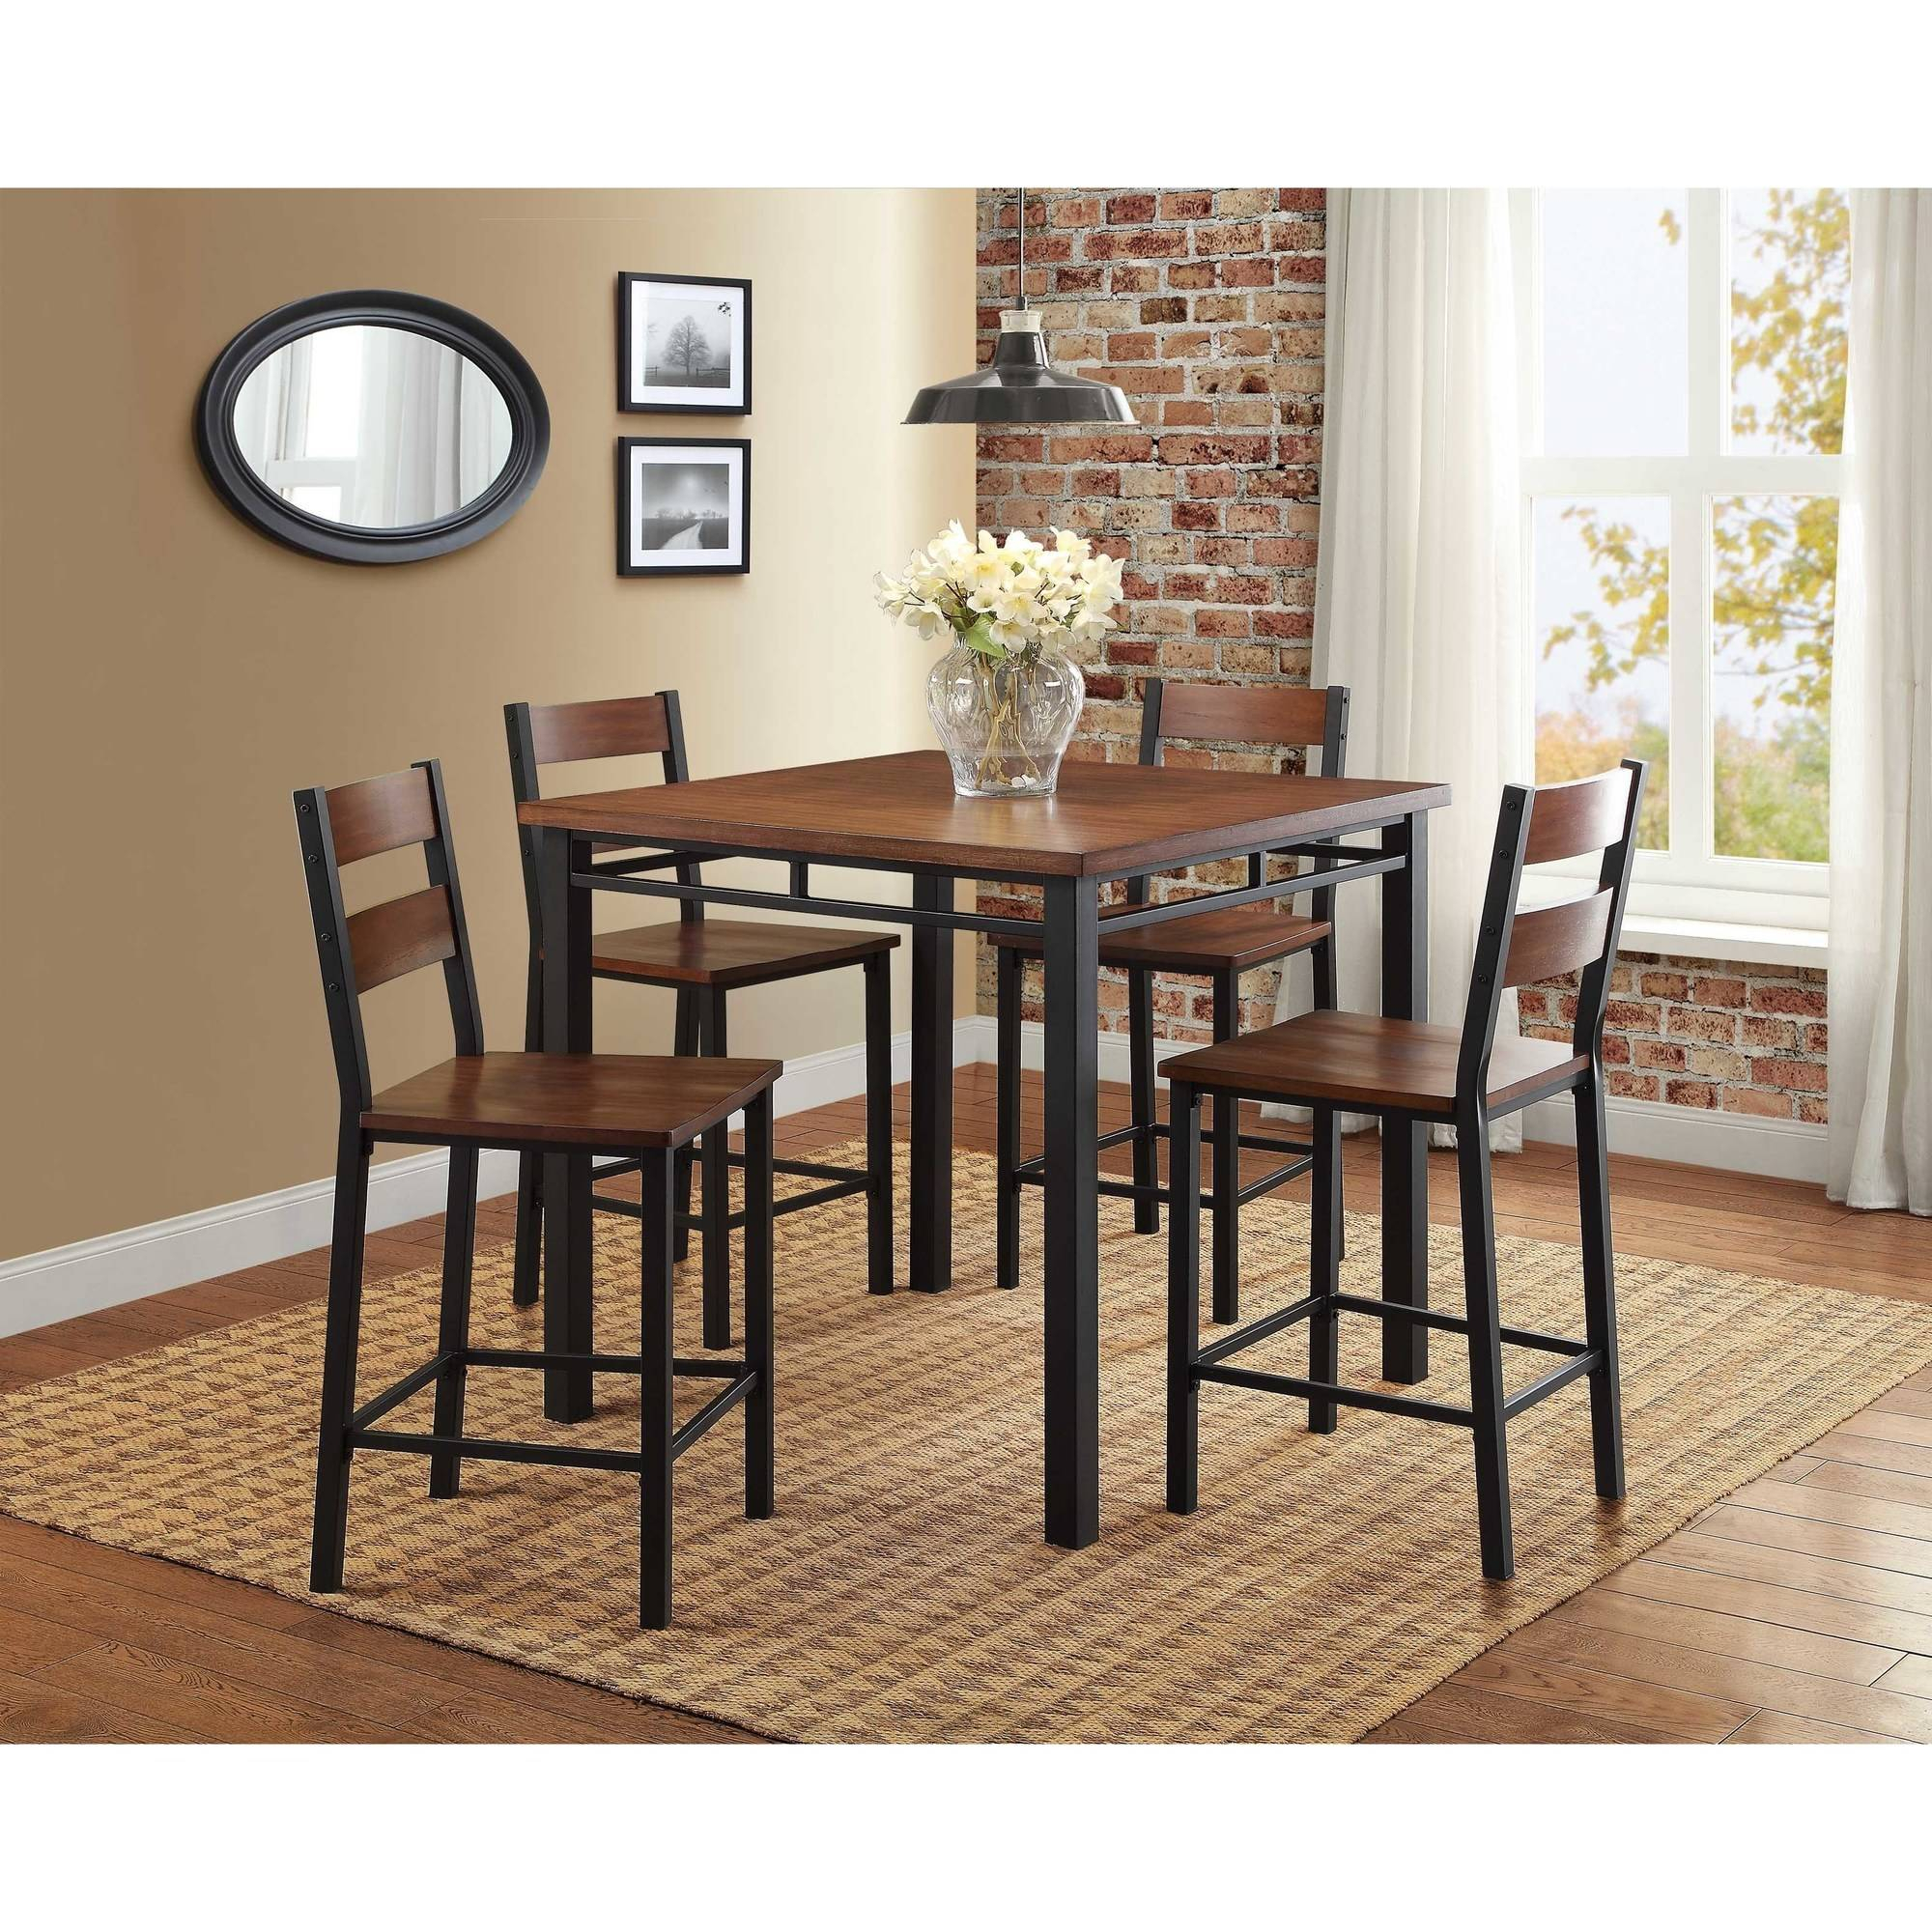 Glamorous 3 Piece Counter Height Kitchen Sets Chairs Setup Chair Throughout Recent Winsome 3 Piece Counter Height Dining Sets (View 19 of 20)